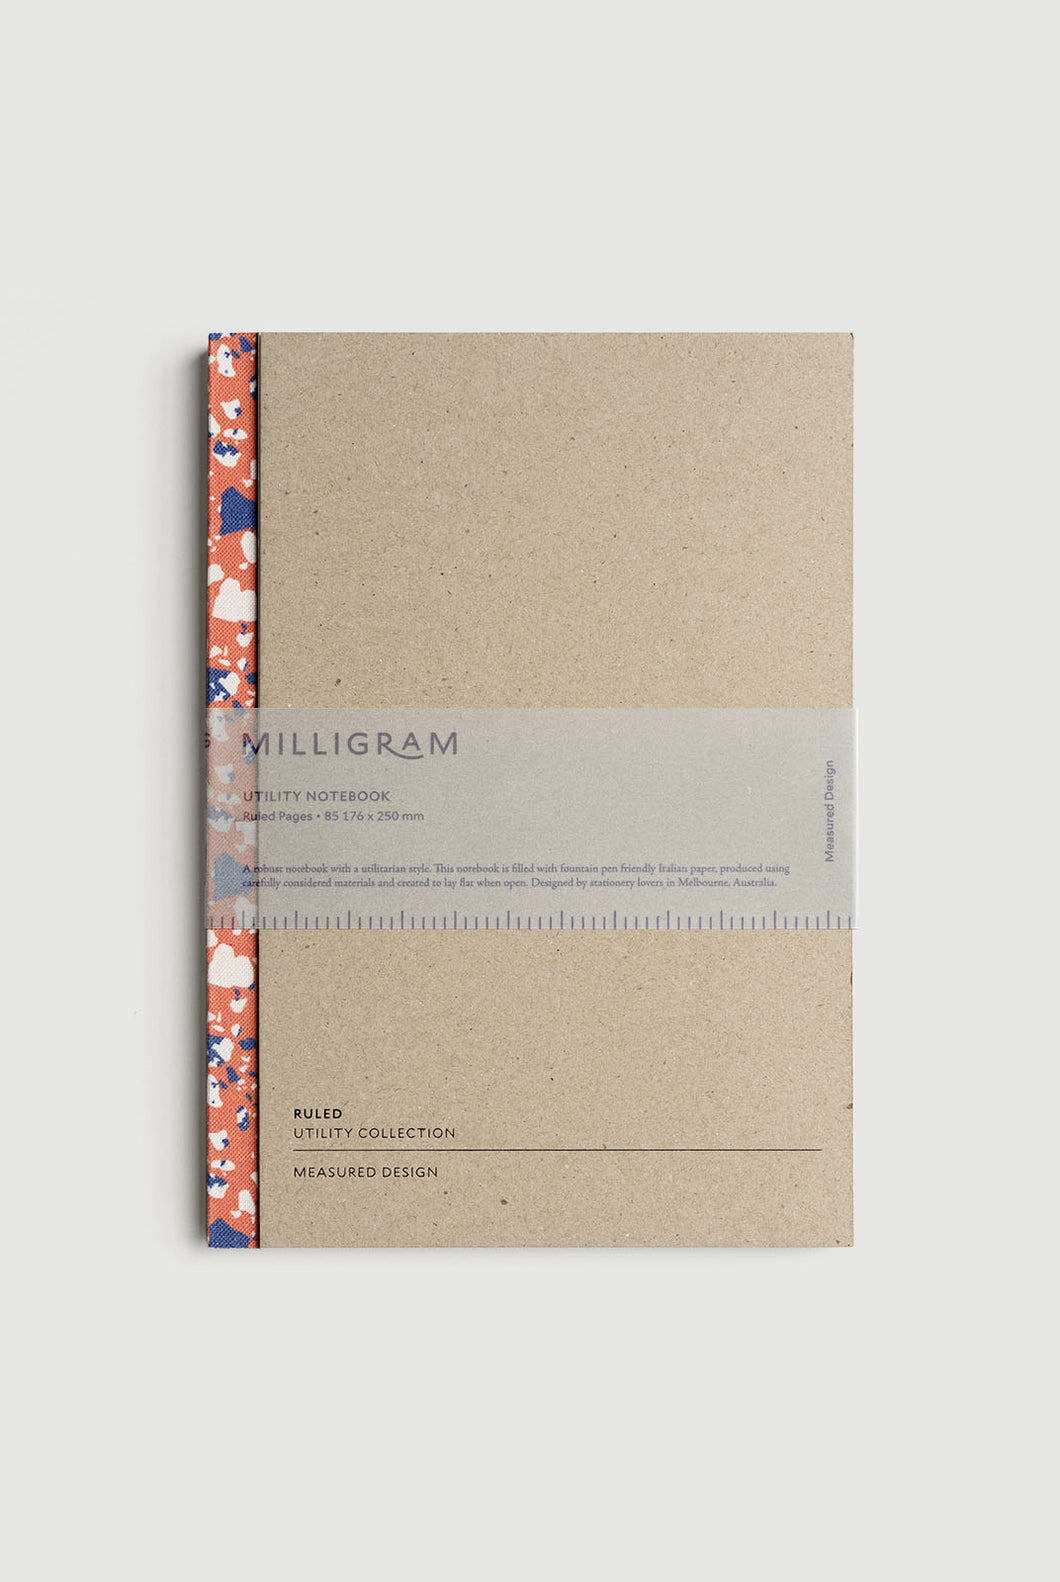 Milligram - Utility Notebook - Ruled - B5 (25 x 19cm) - Terrazzo Pattern